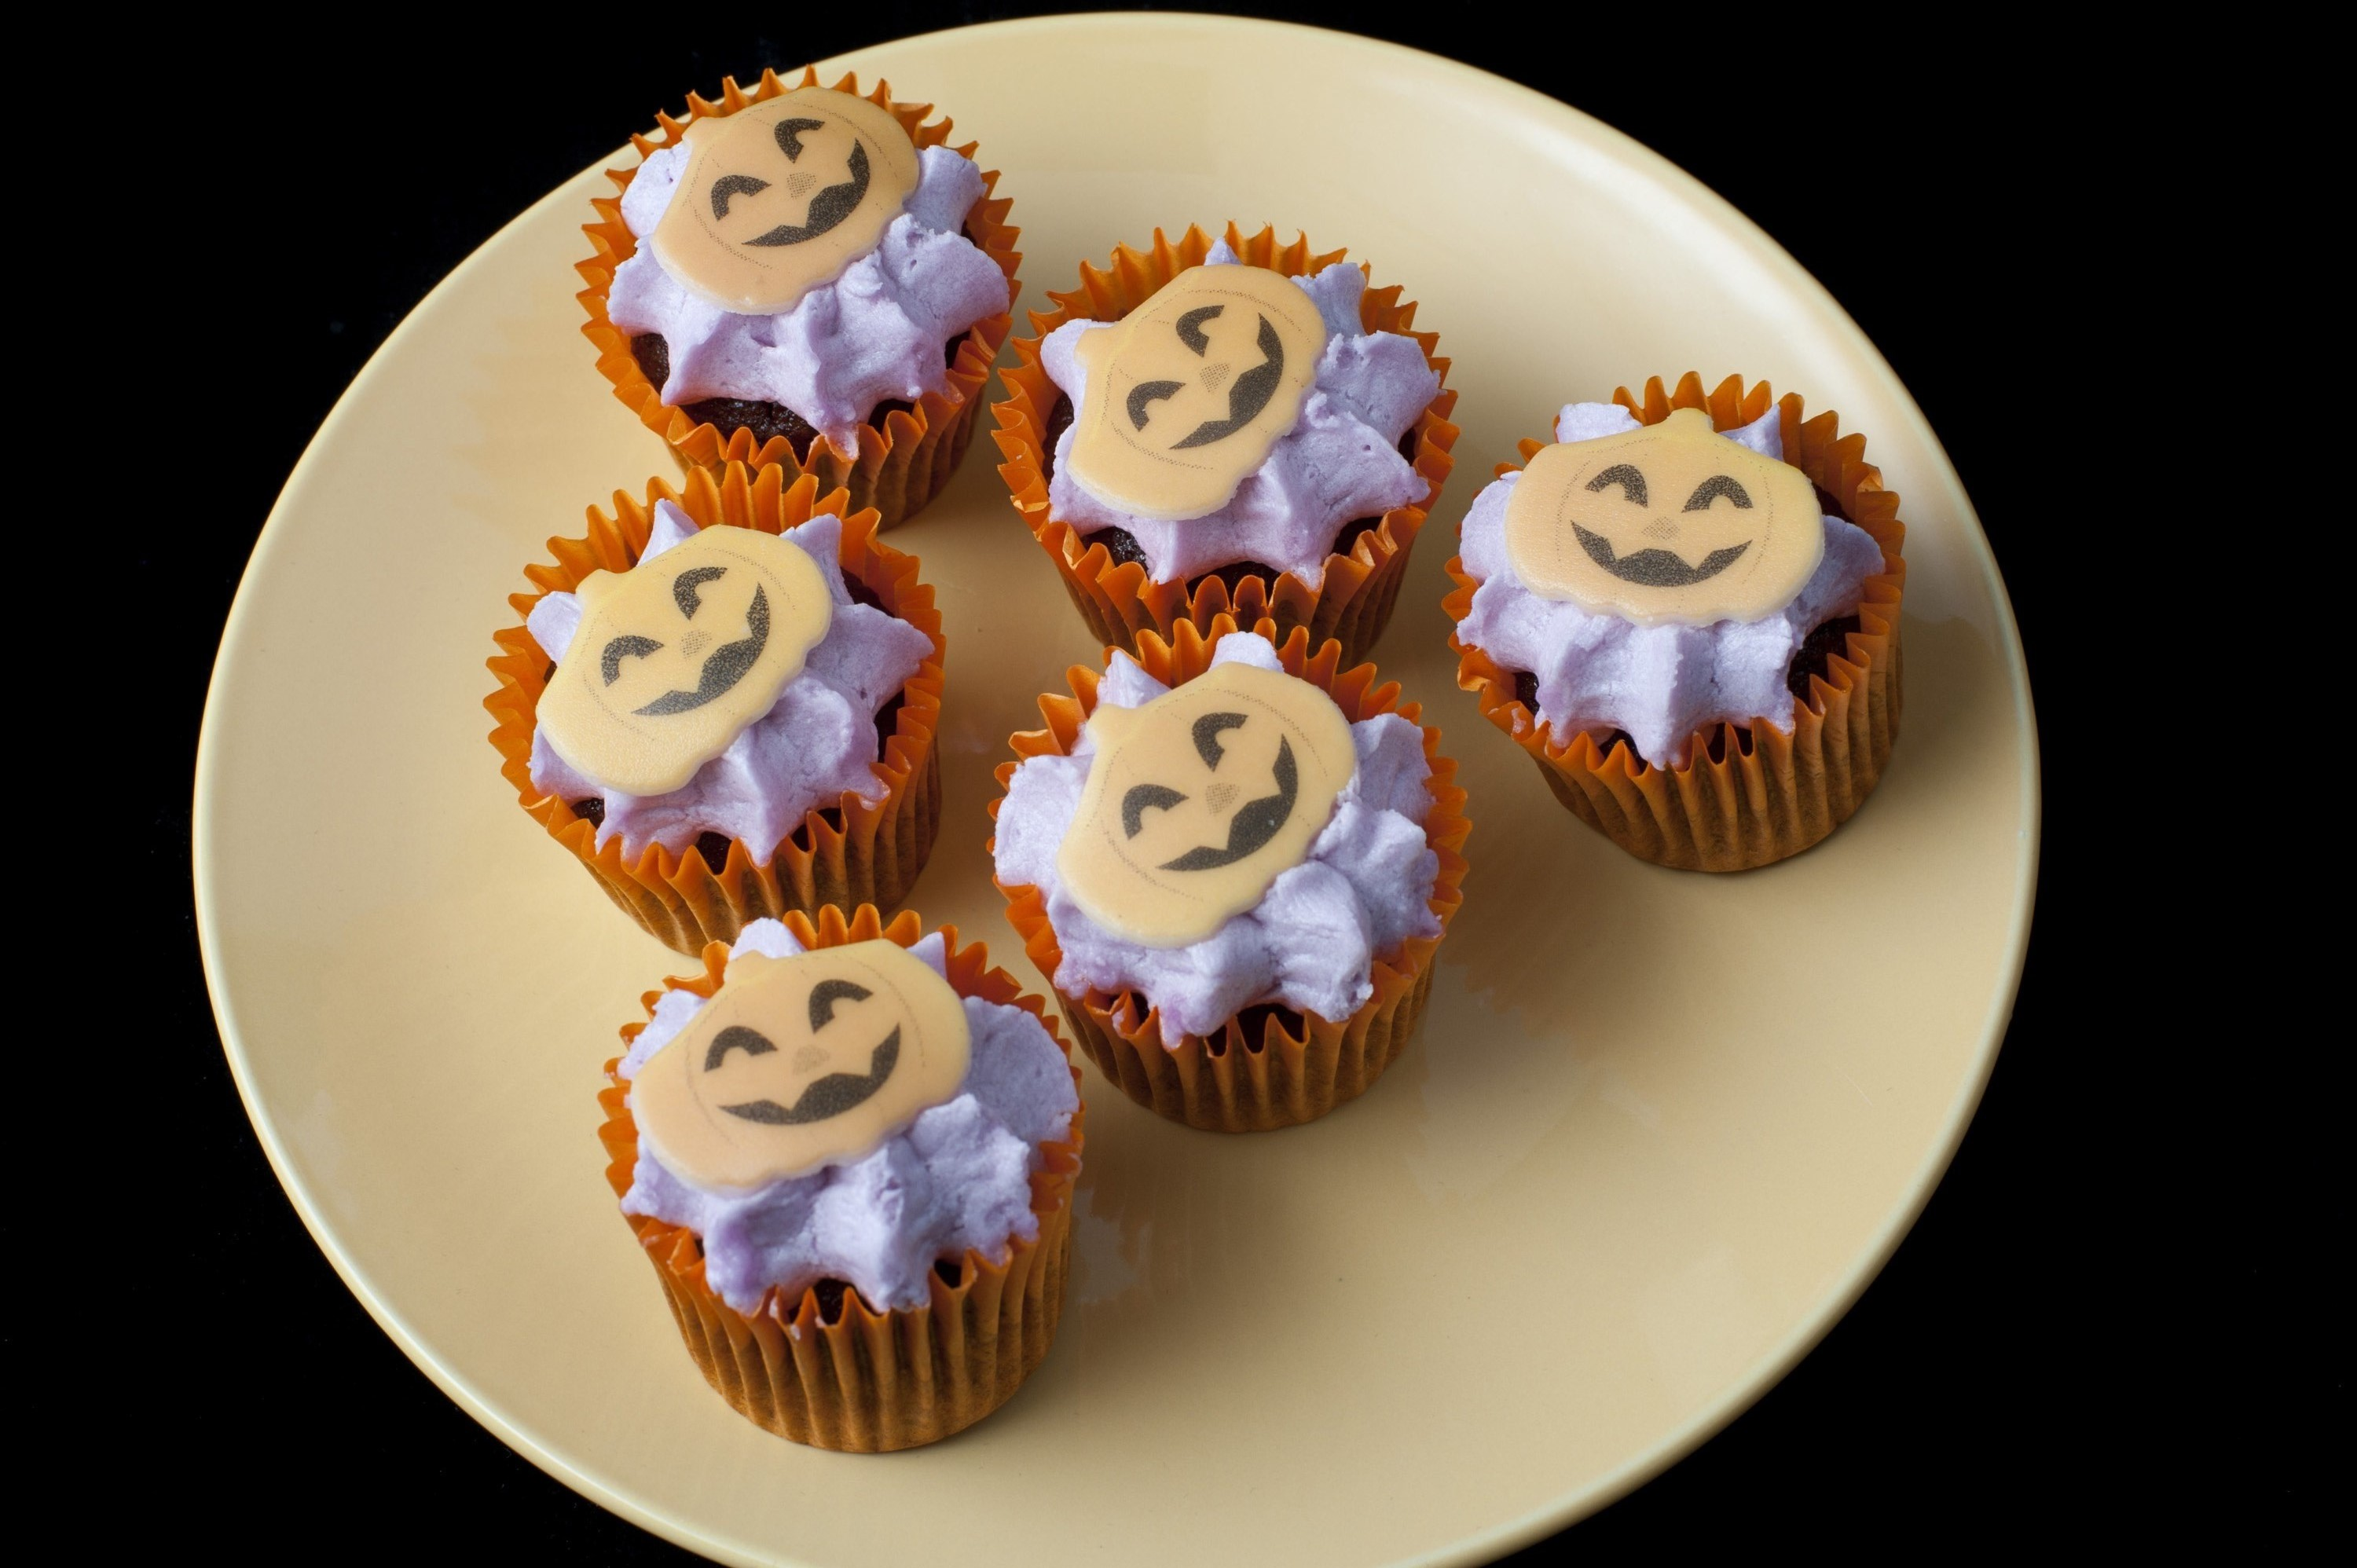 a plate with some halloween decorated iced mini cup cakes